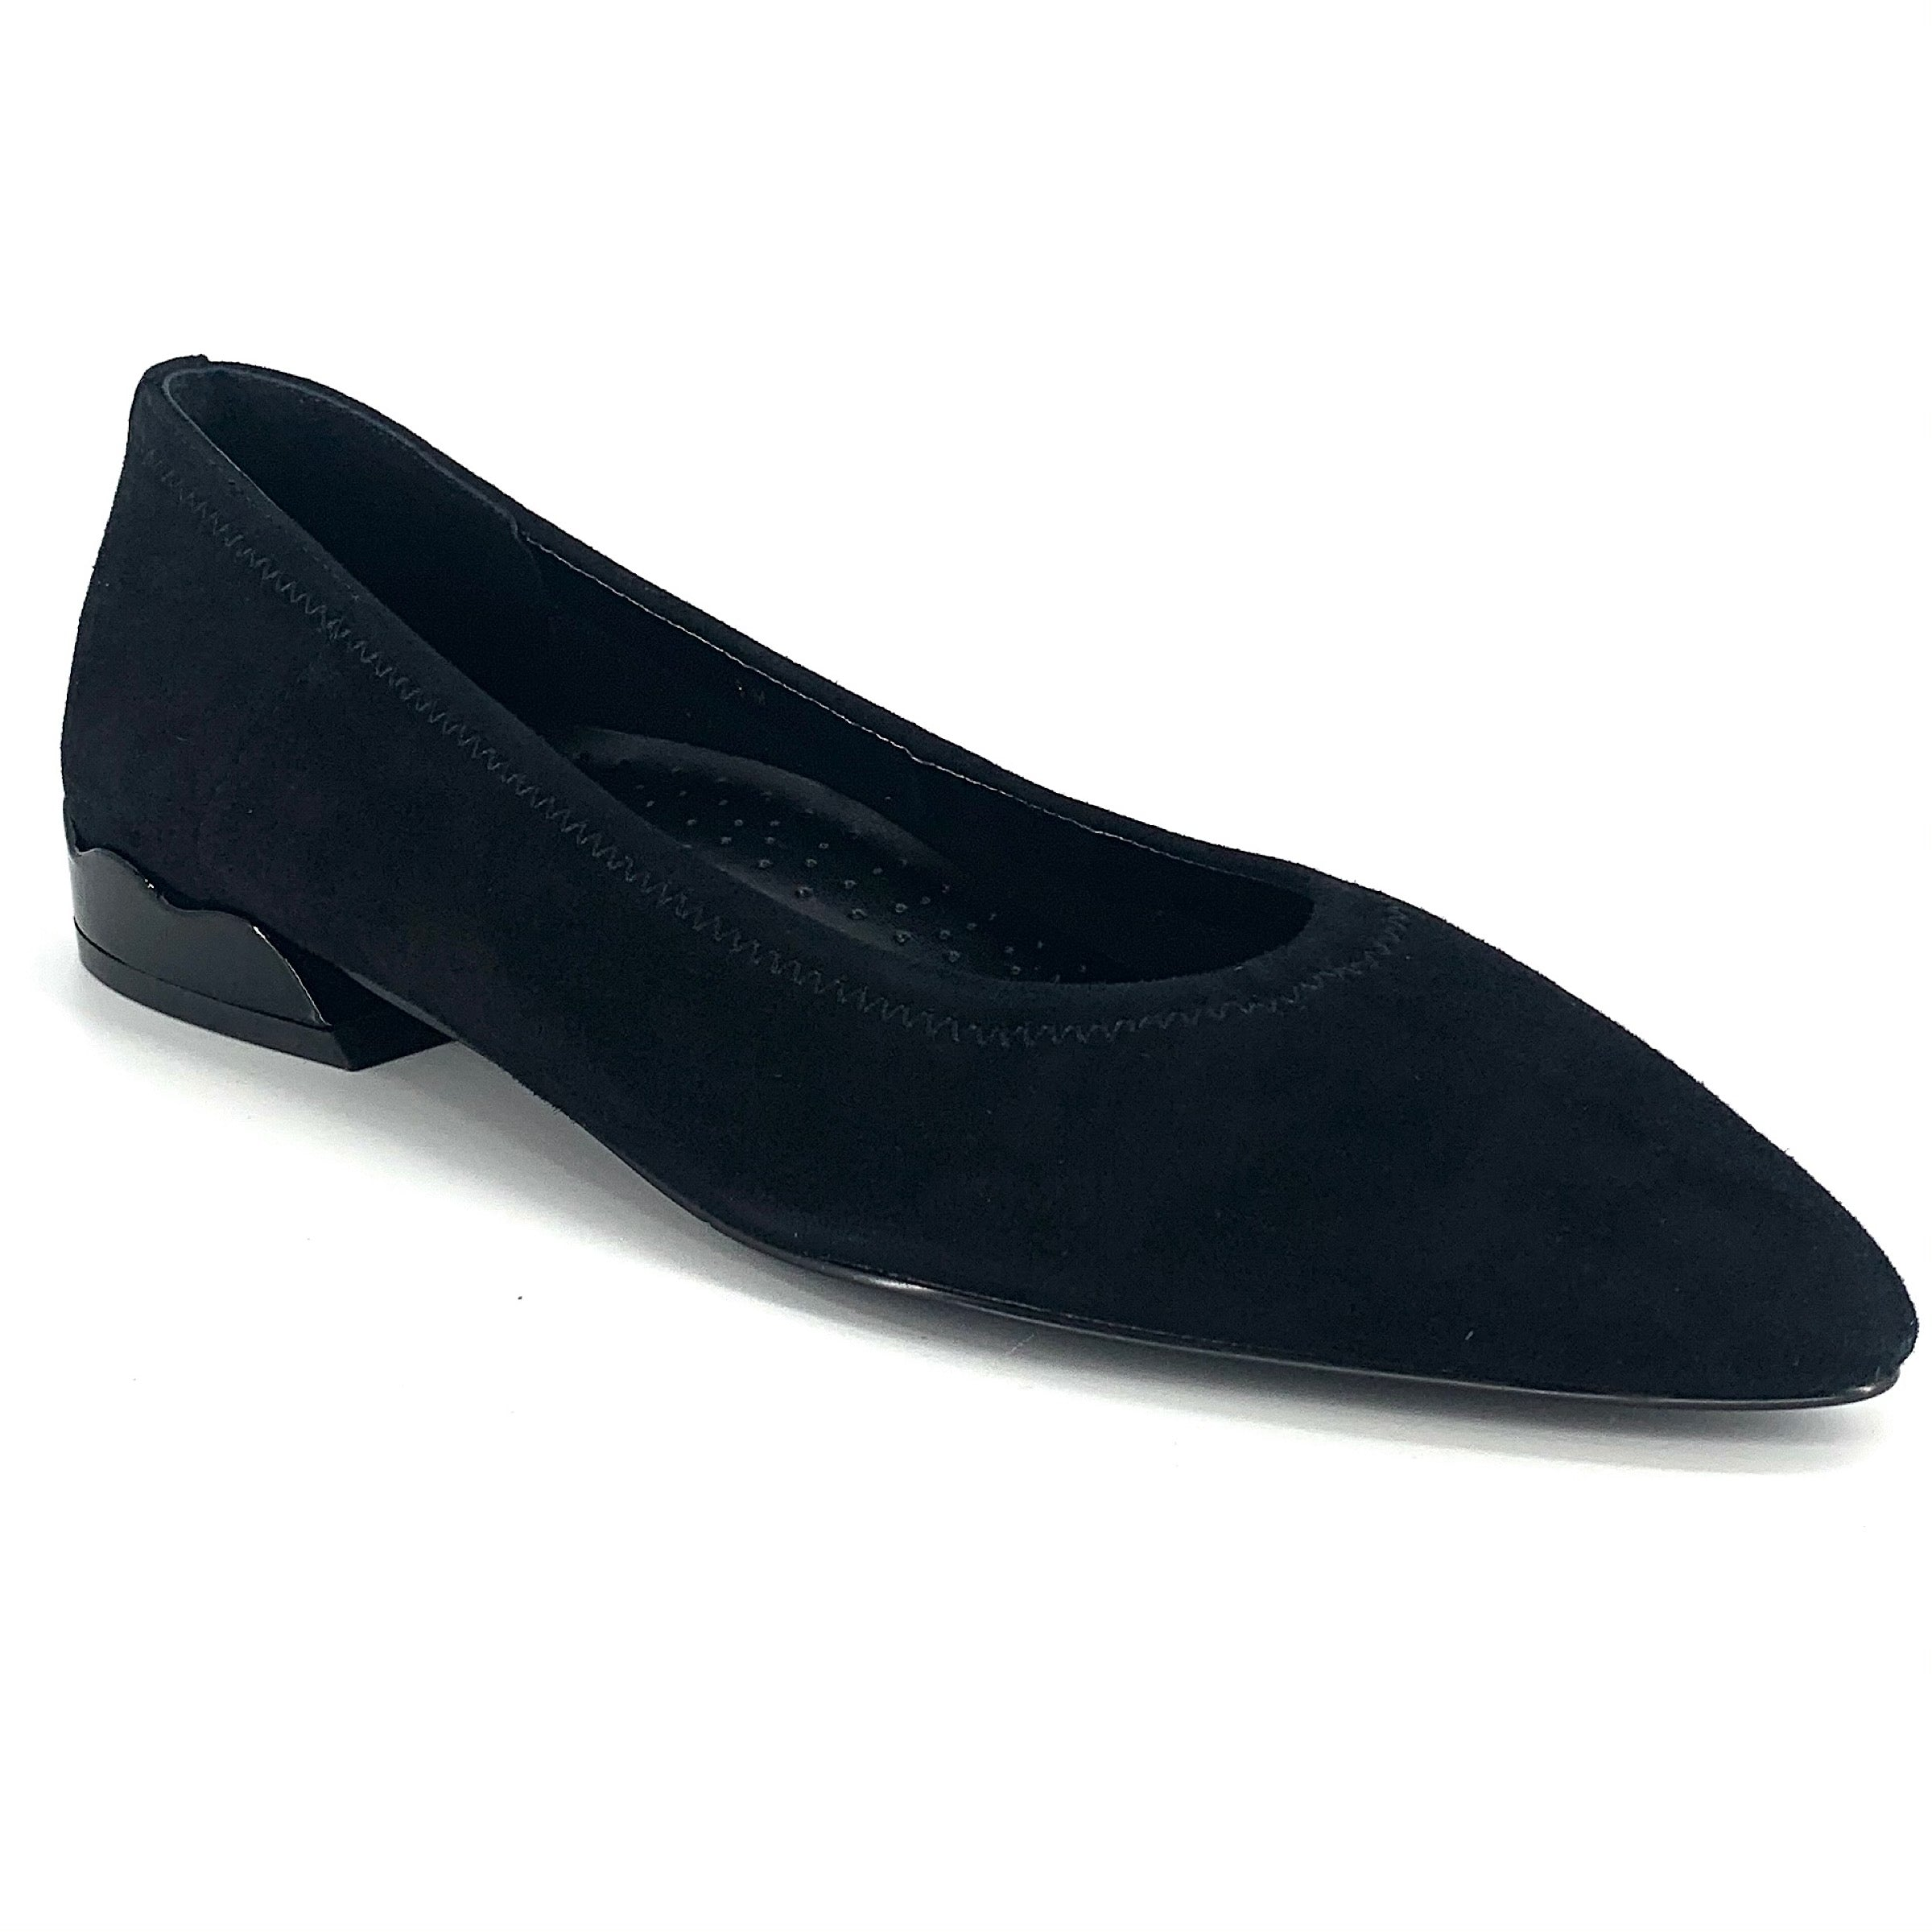 The Scallop Heel Flat in Black